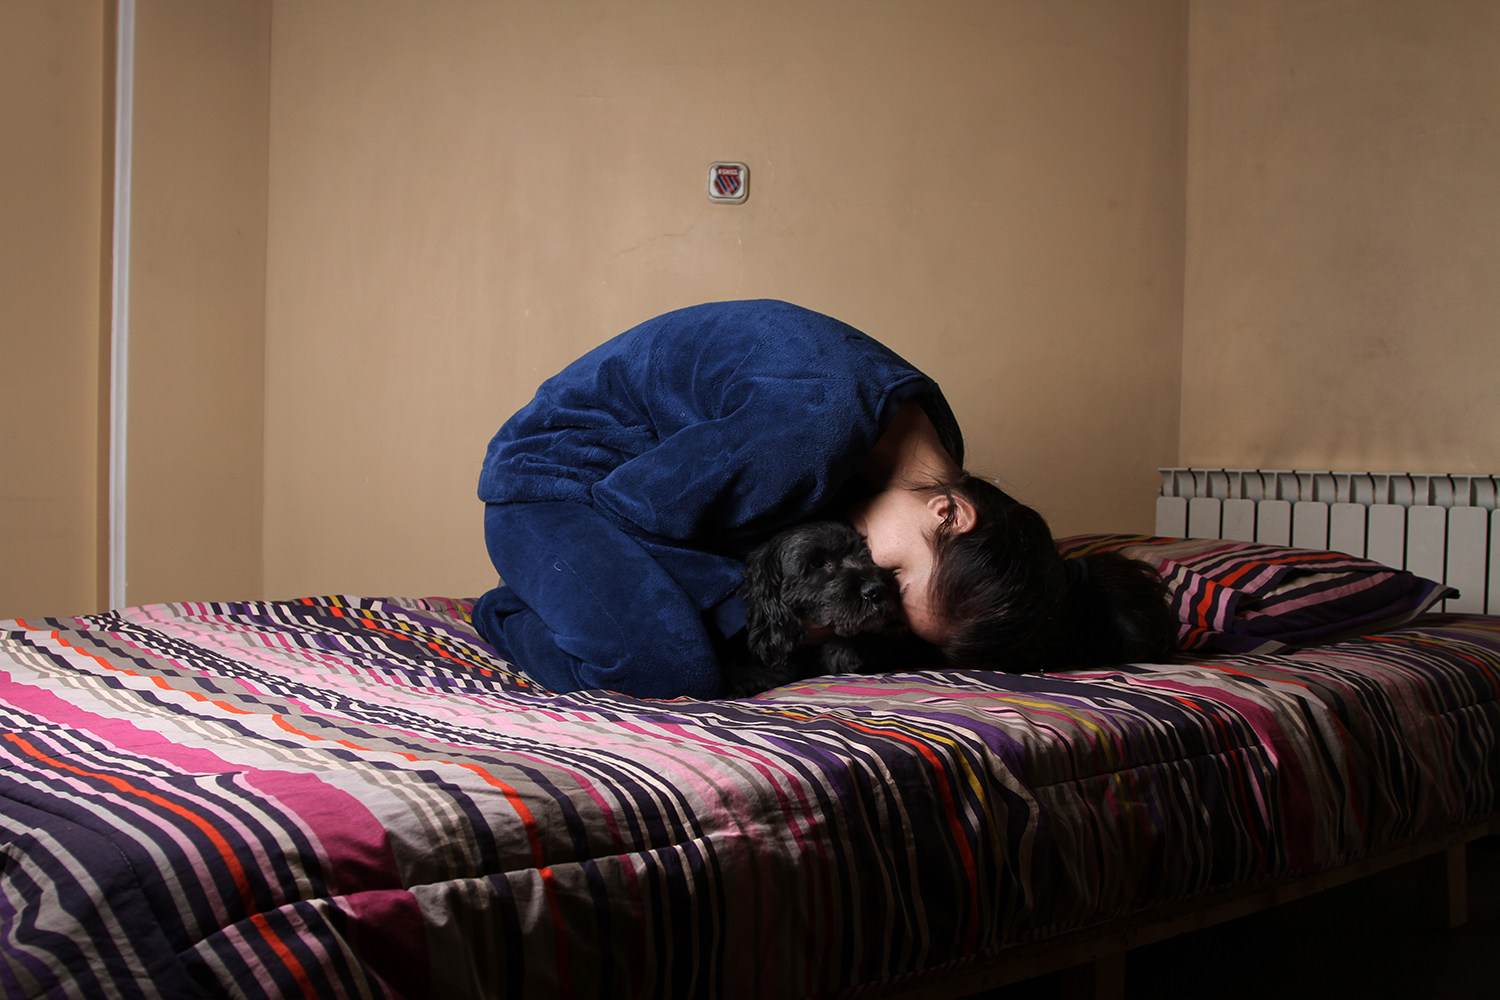 The blind-09 : 'The blind' is a photo book about 12 Iranian women who live alone. Although there is social stigma,the number of single women who choose this lifestyle is growing these days.